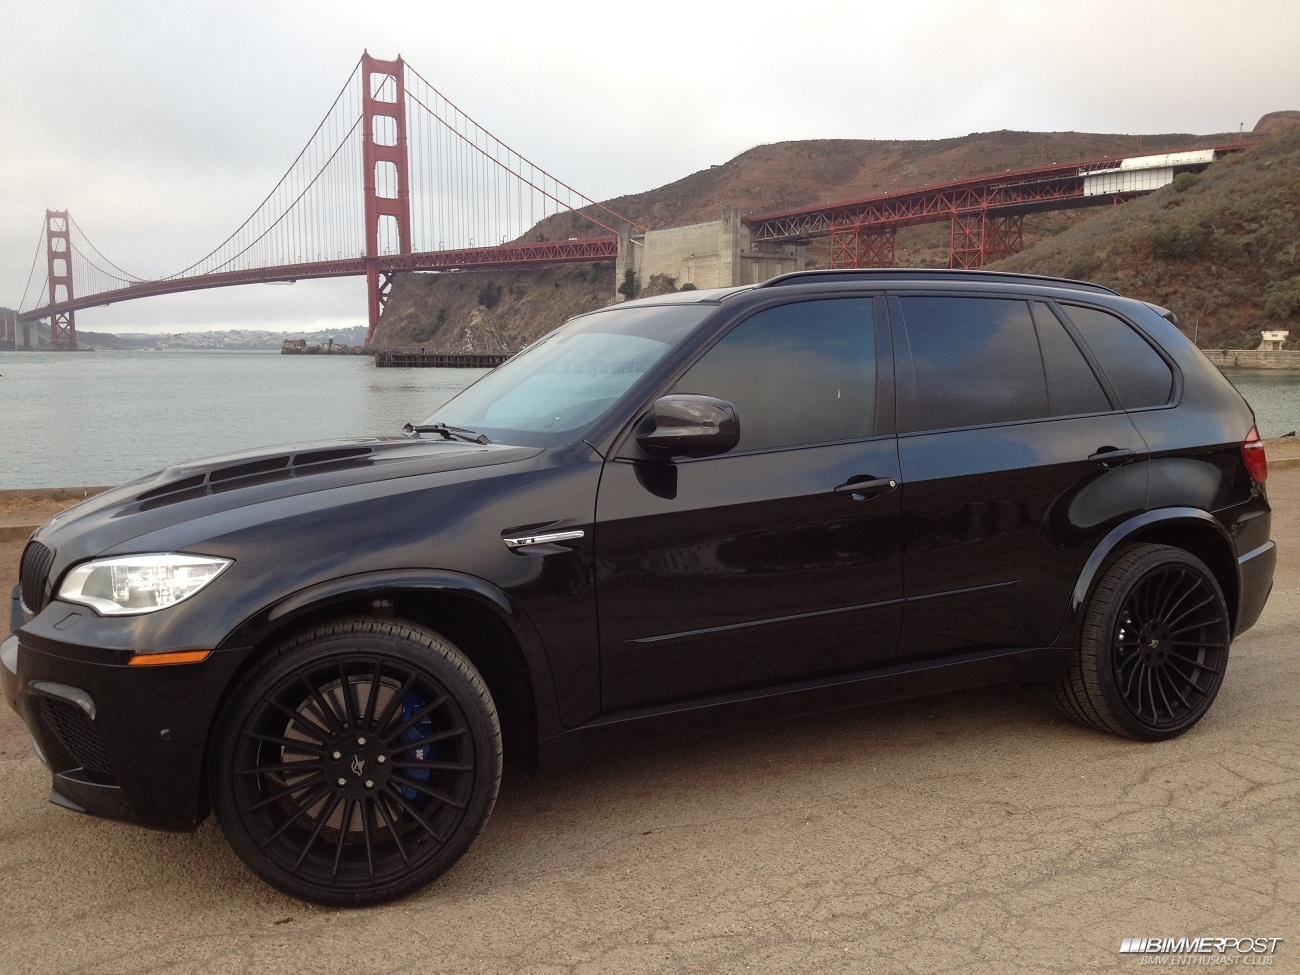 black bmw x5 2013 photo - 5